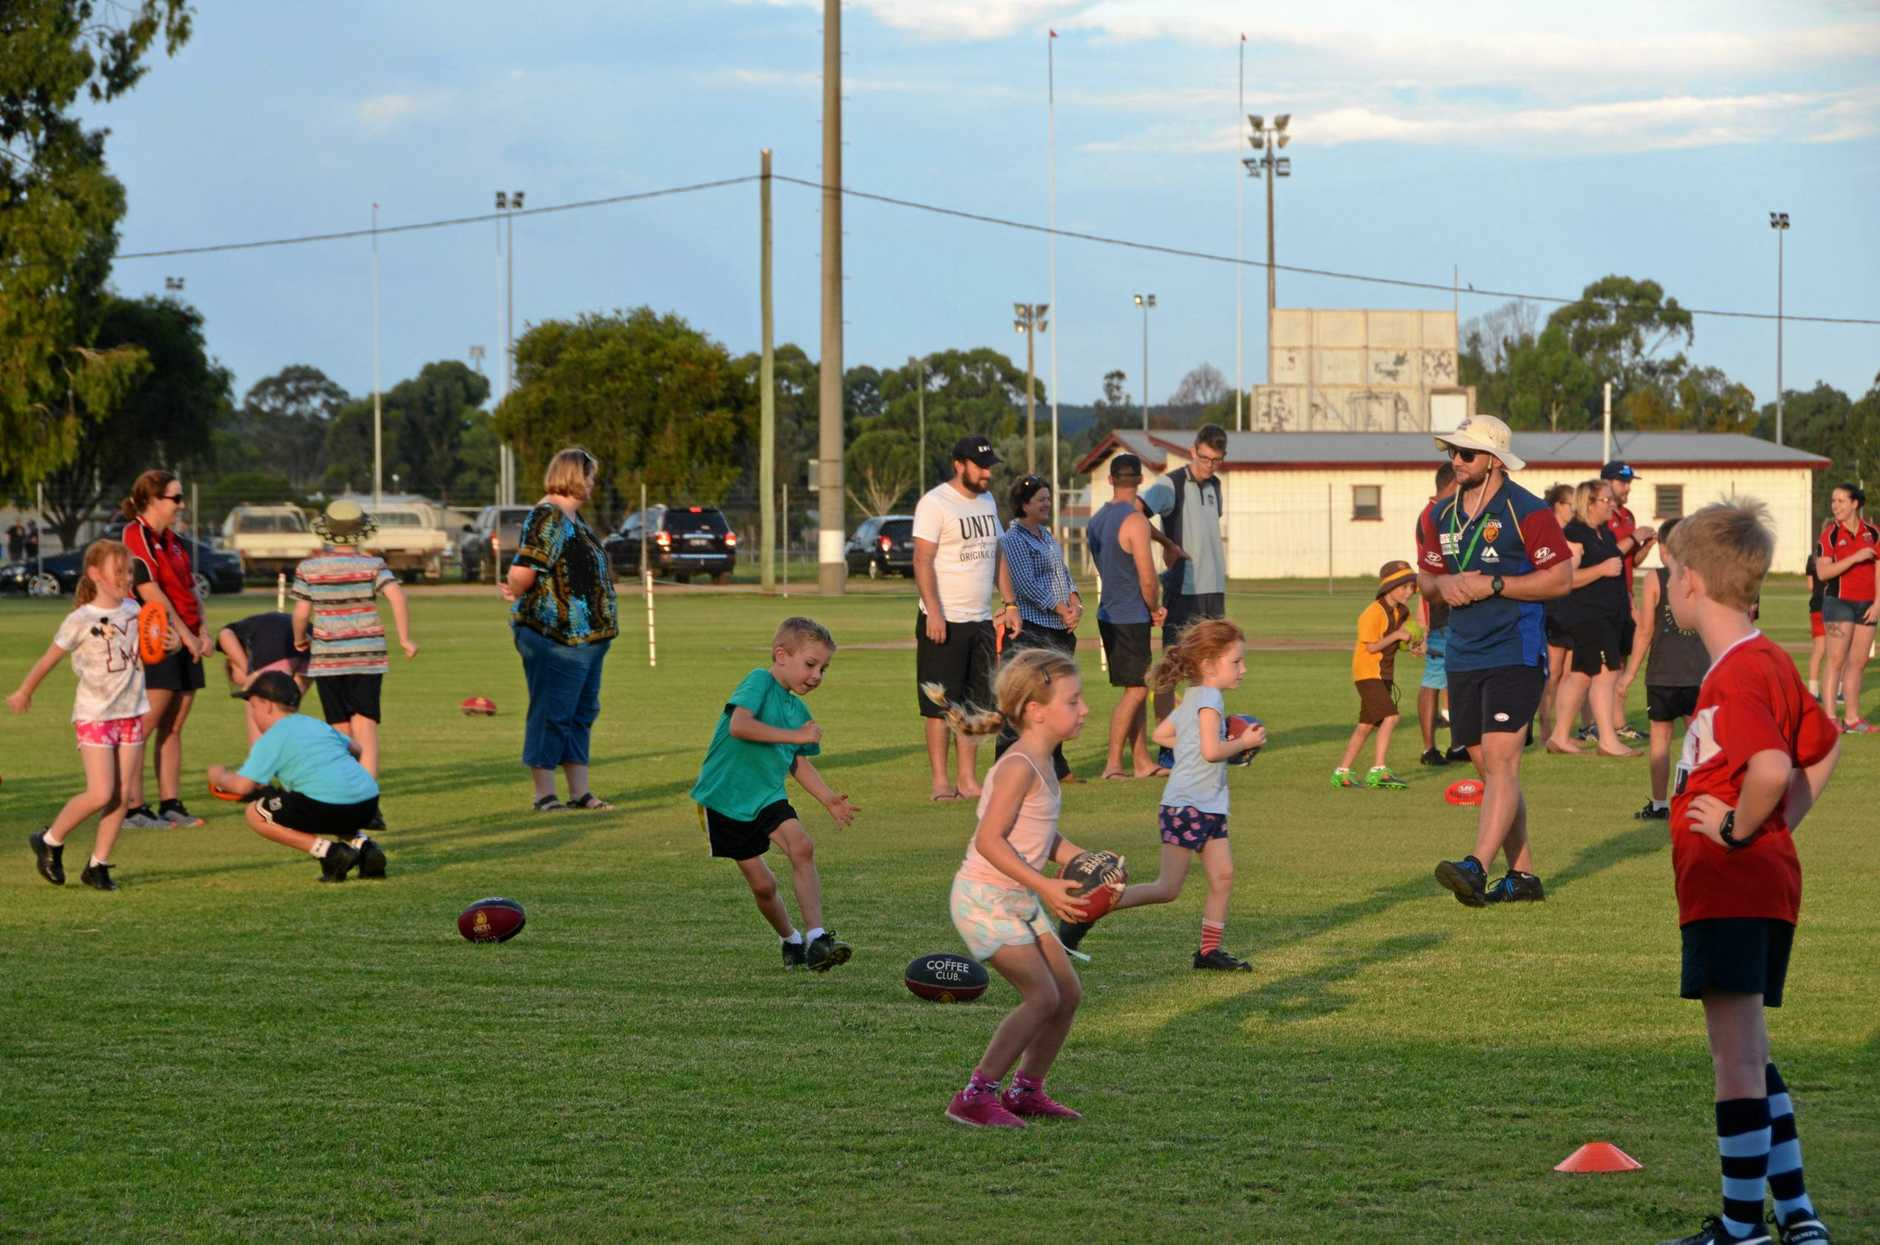 Auskick programs will be on offer in Kingaroy and Nanango in 2019.